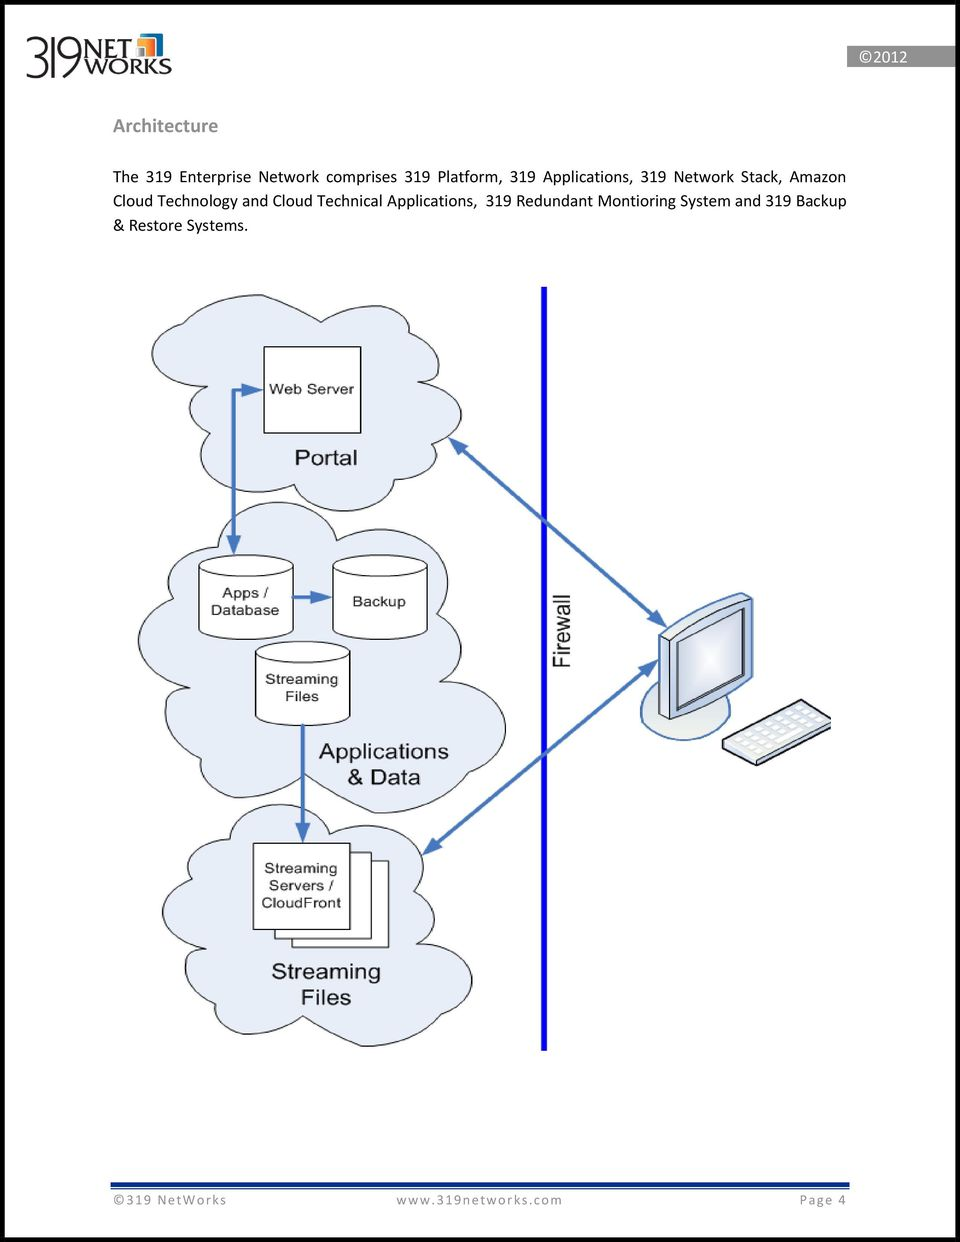 Cloud Technical Applications, 319 Redundant Montioring System and